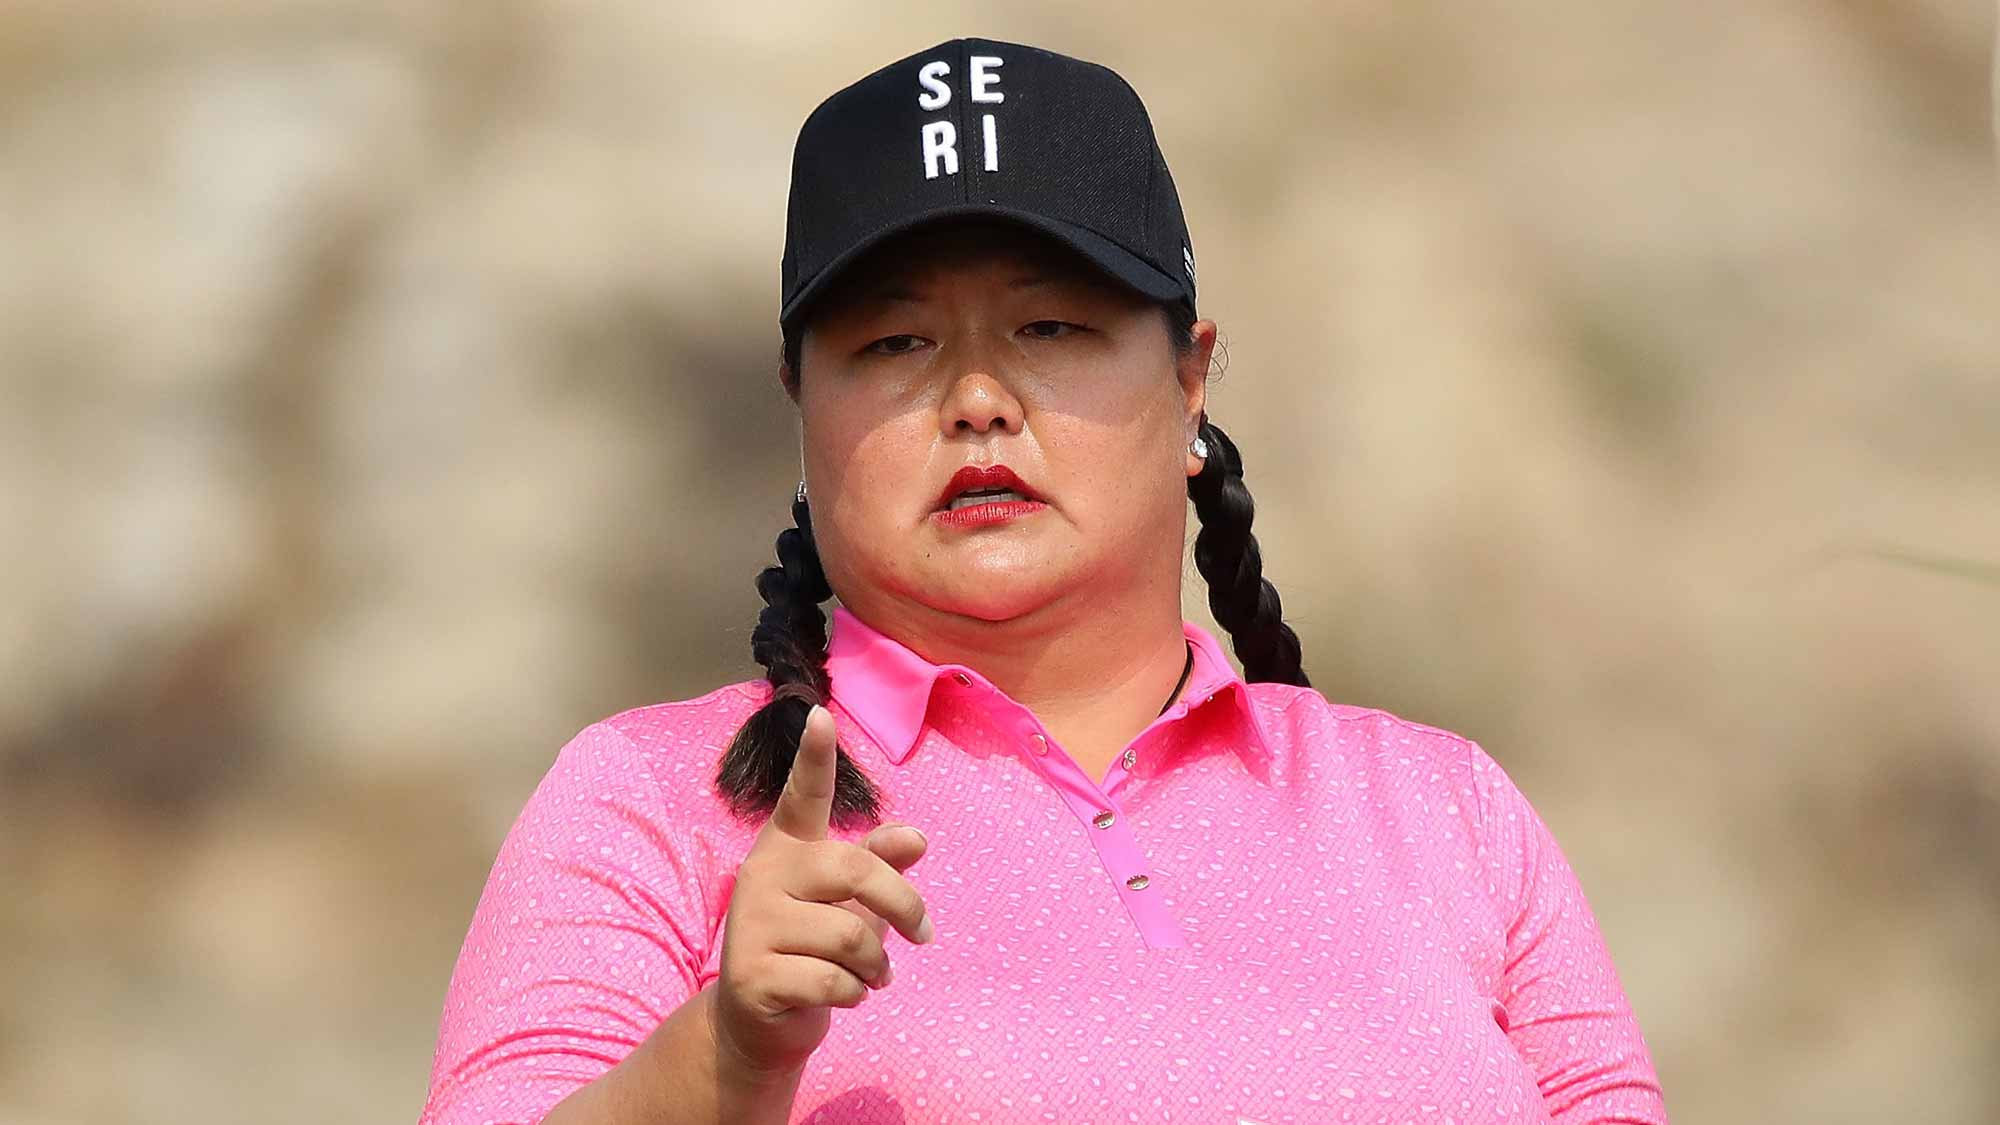 Christina Kim of United States wear Se-Ri Pak's hat on the 2nd hole during the second round of the LPGA KEB-Hana Bank Championship at the Sky 72 Golf Club Ocean Course